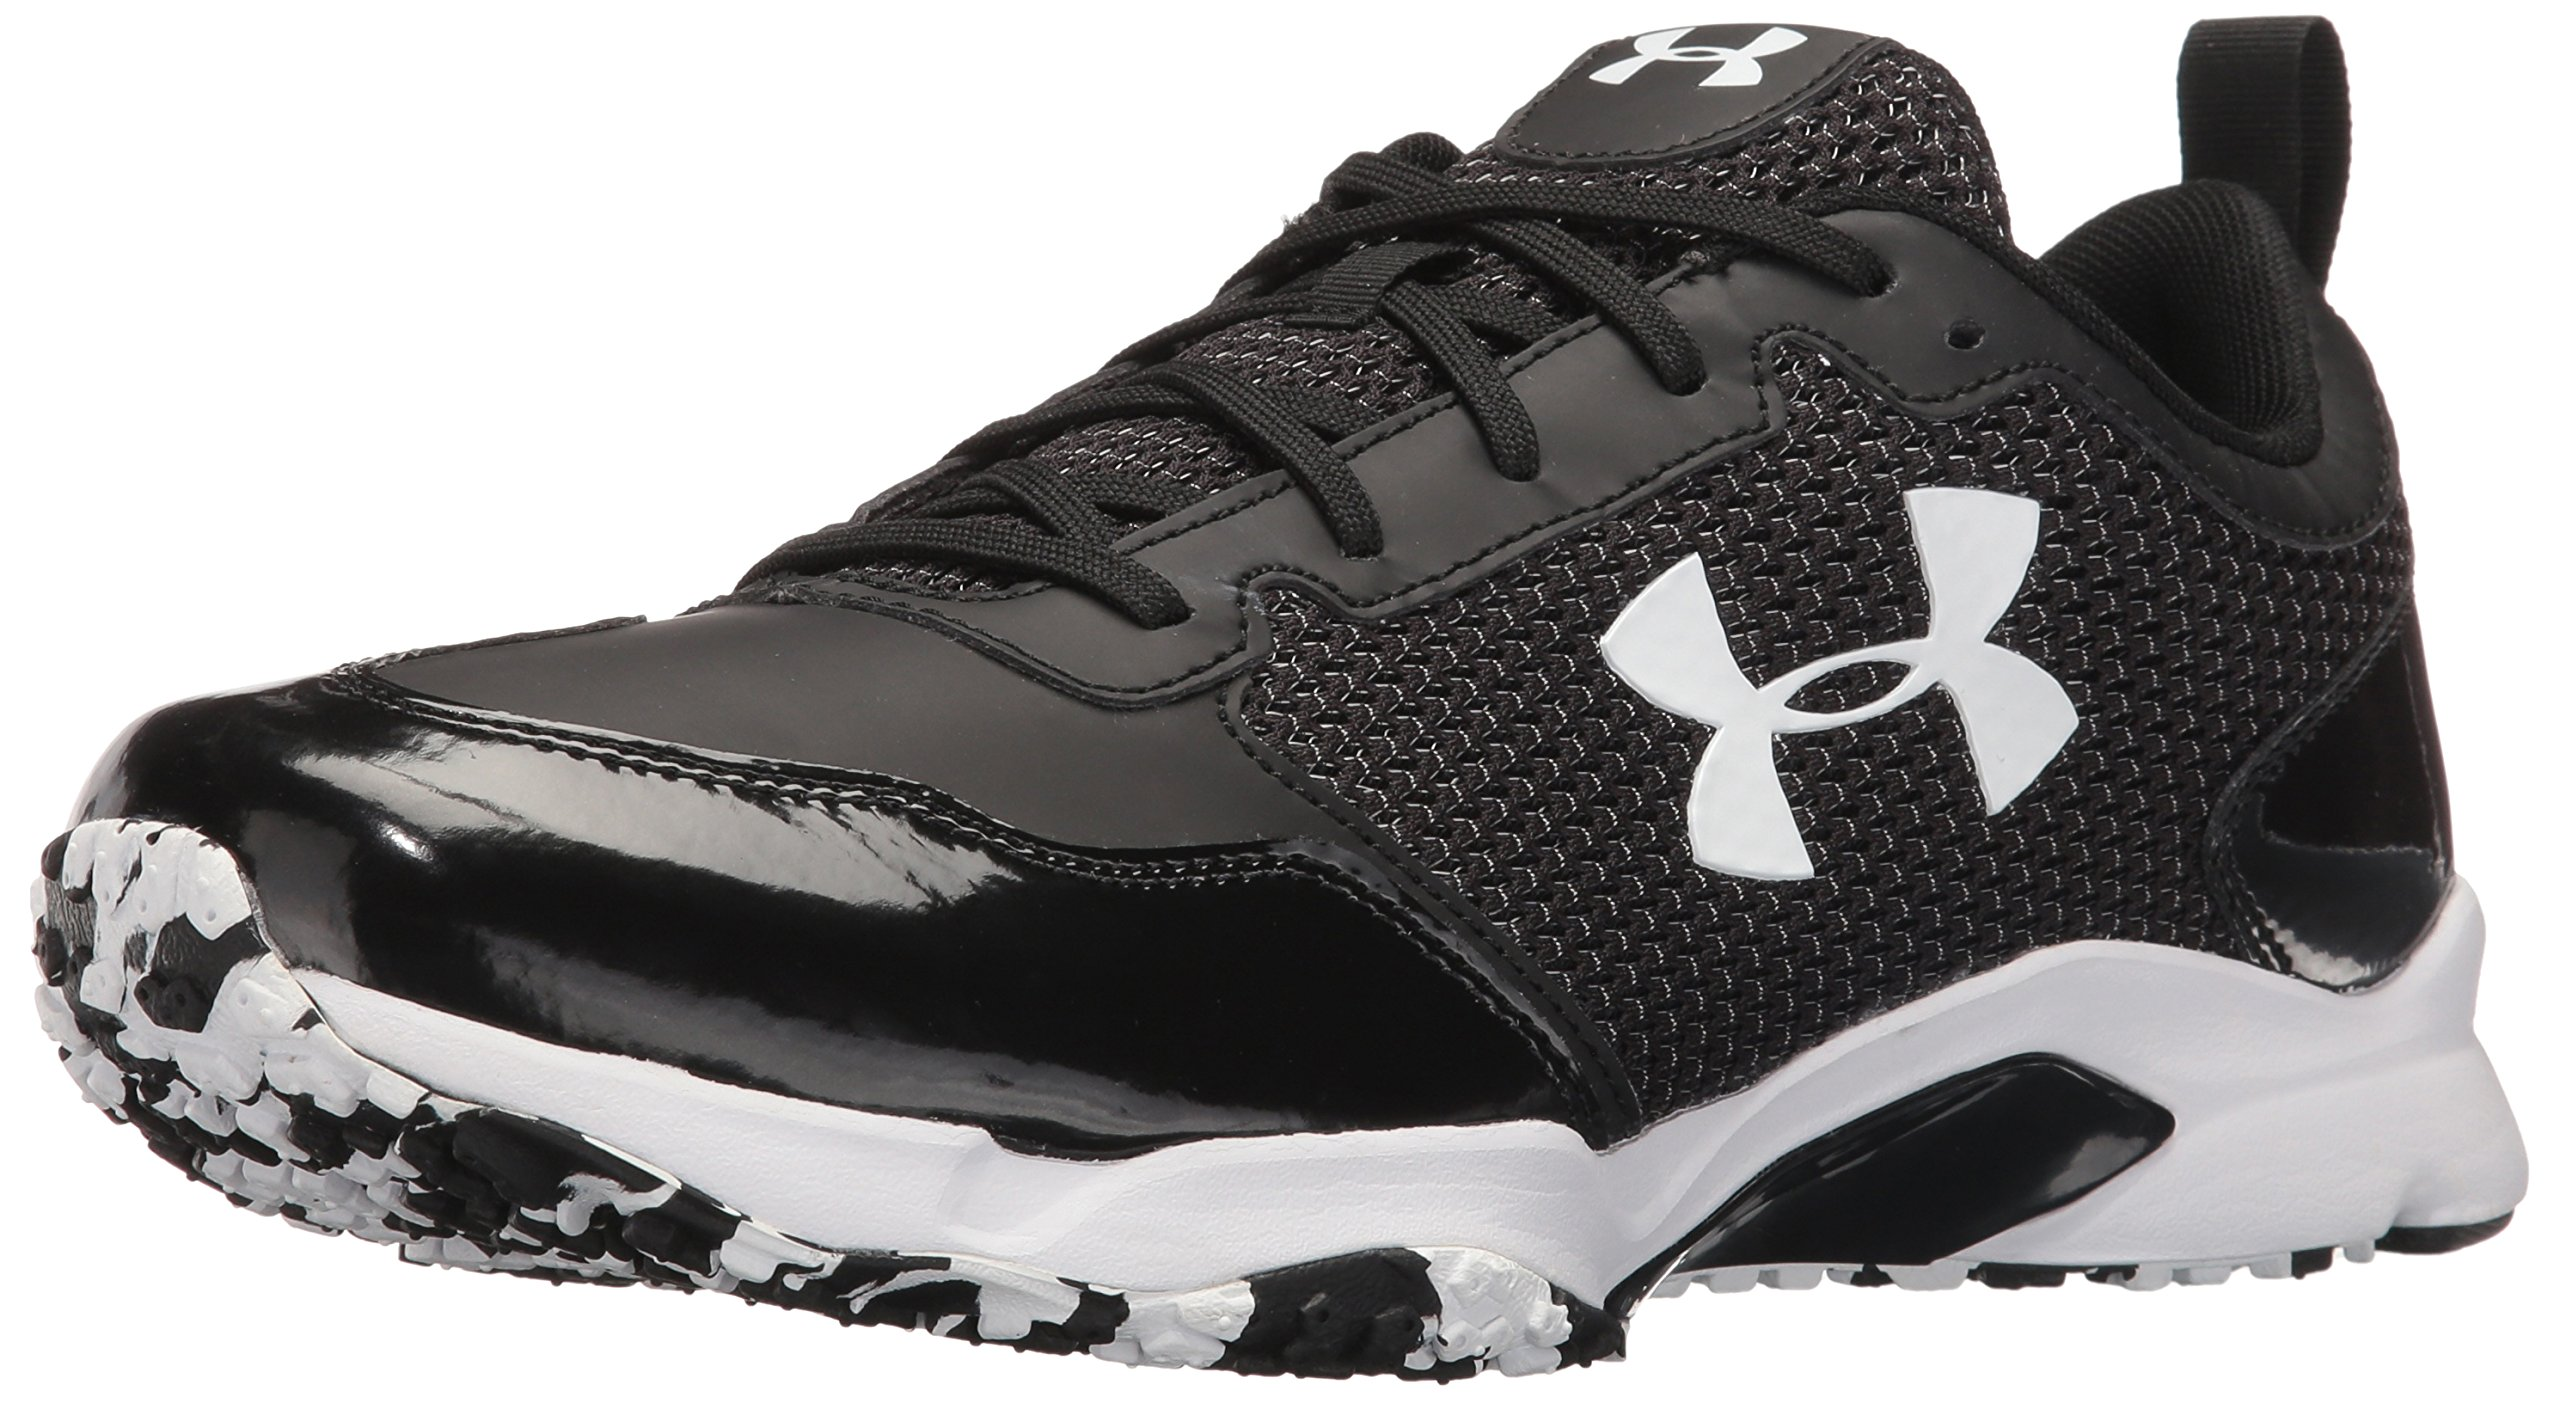 Under Armour Men's Ultimate Turf Trainer Baseball Shoe, Black (001)/Black, 11 by Under Armour